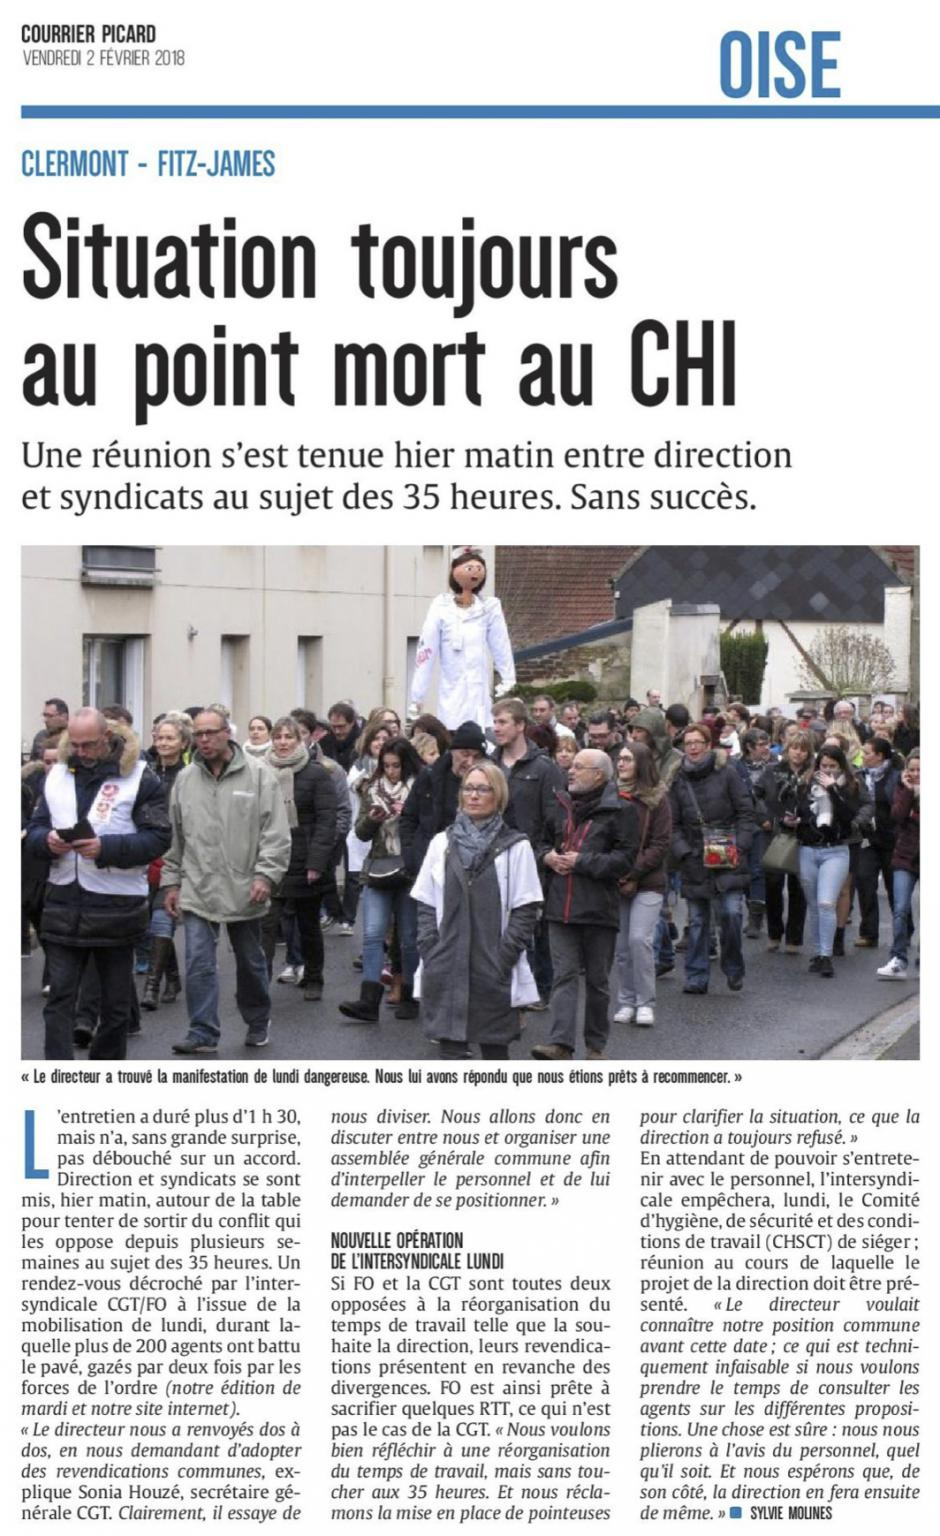 20180202-CP-Clermont-Fitz-James-Situation toujours au point mort au CHI